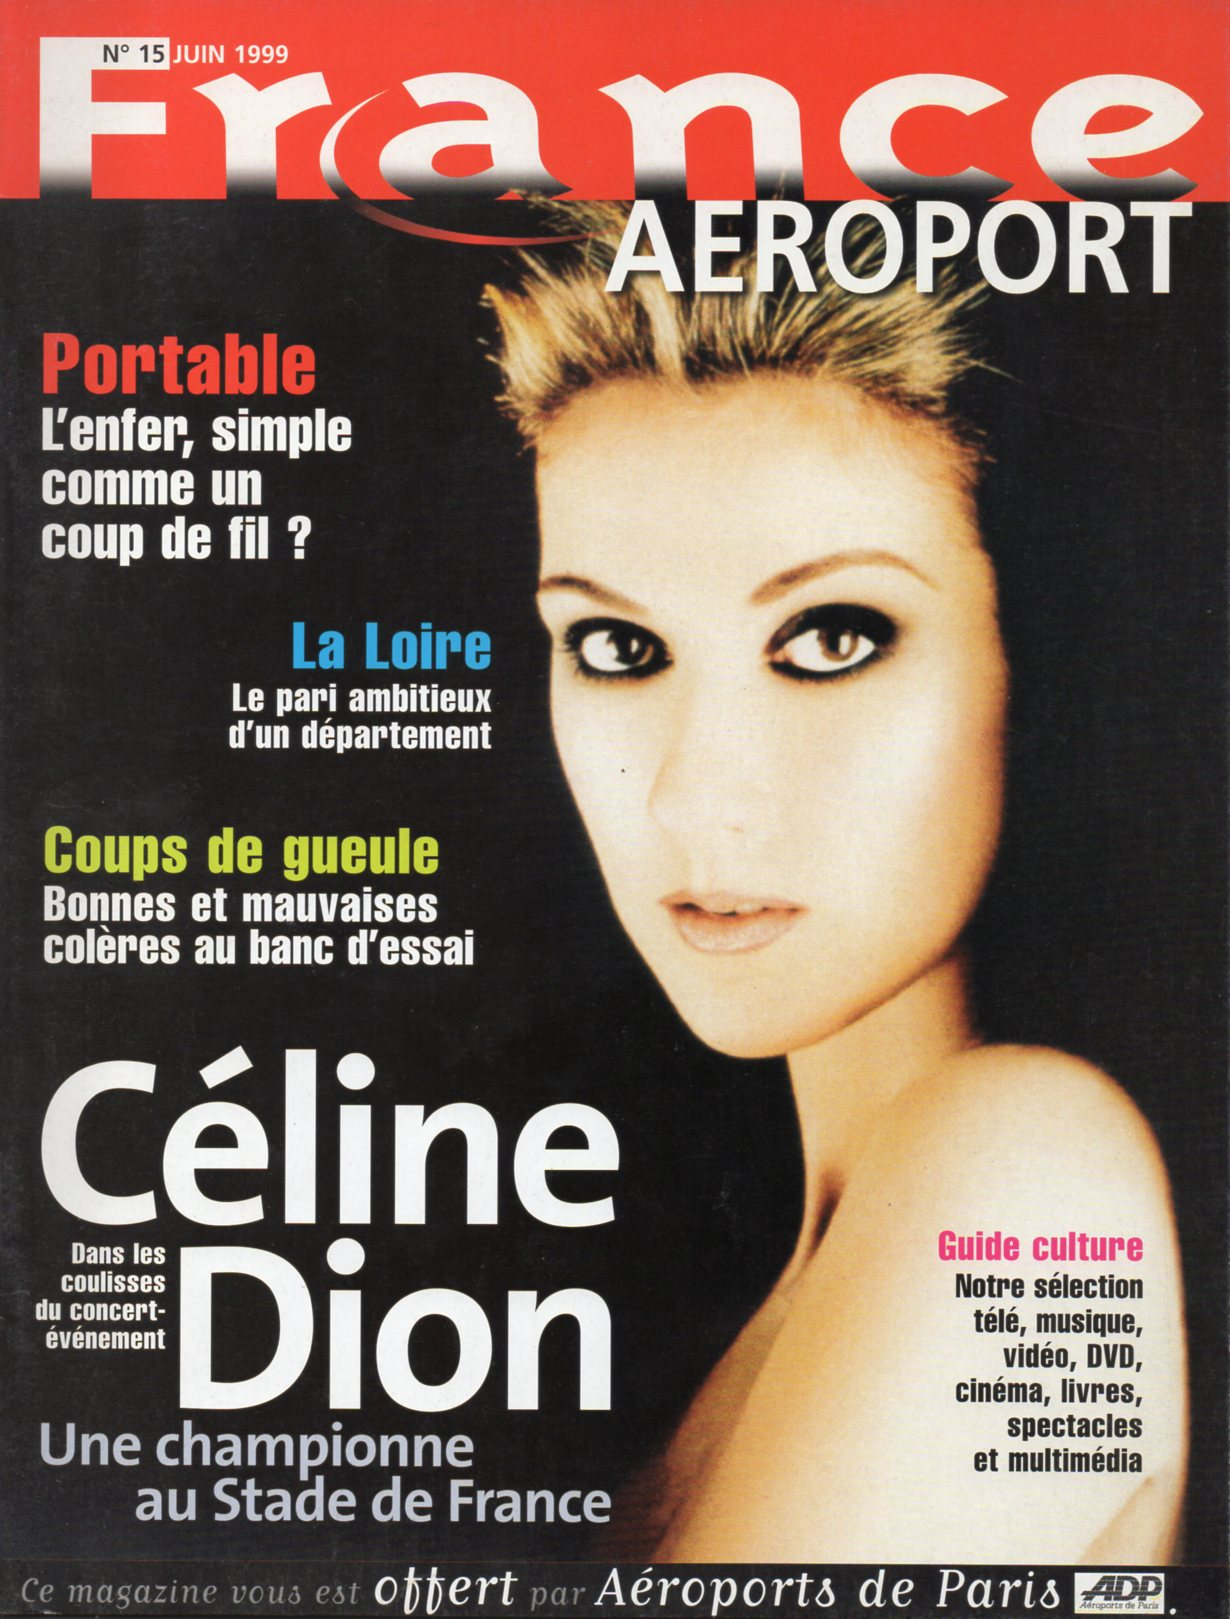 CELINE DION - JULIEN CLERC - France Aeroport N° 15 - Magazine